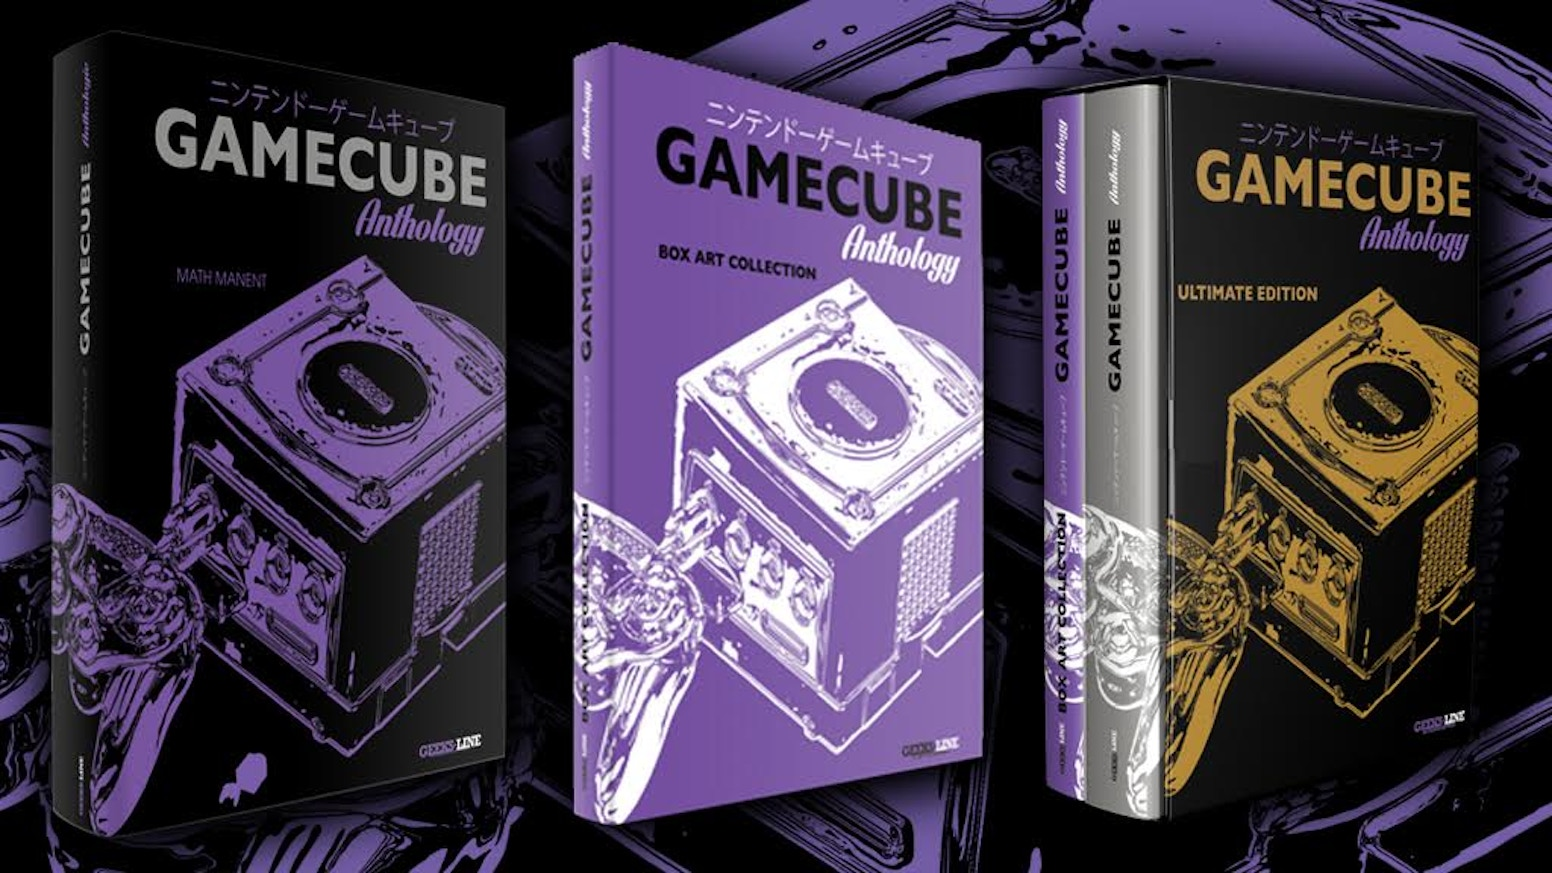 GAMECUBE ANTHOLOGY - The Ultimate Book